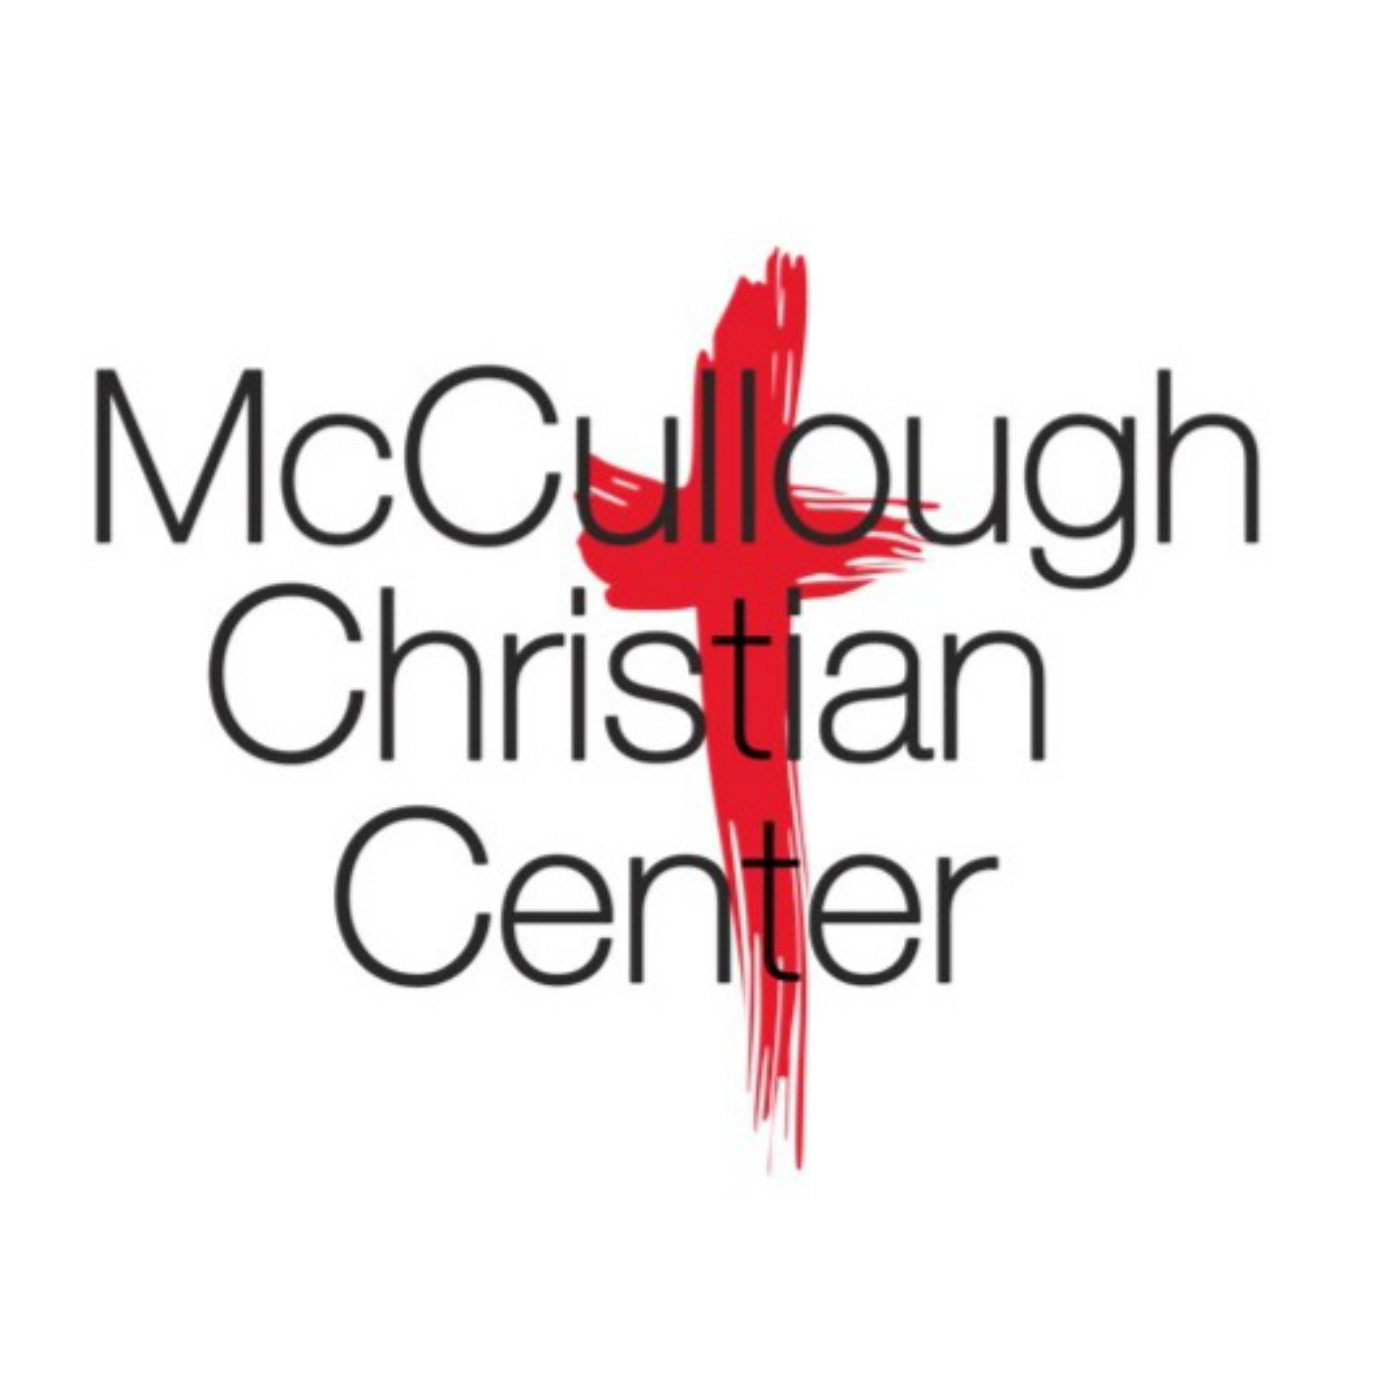 McCullough Christian Center